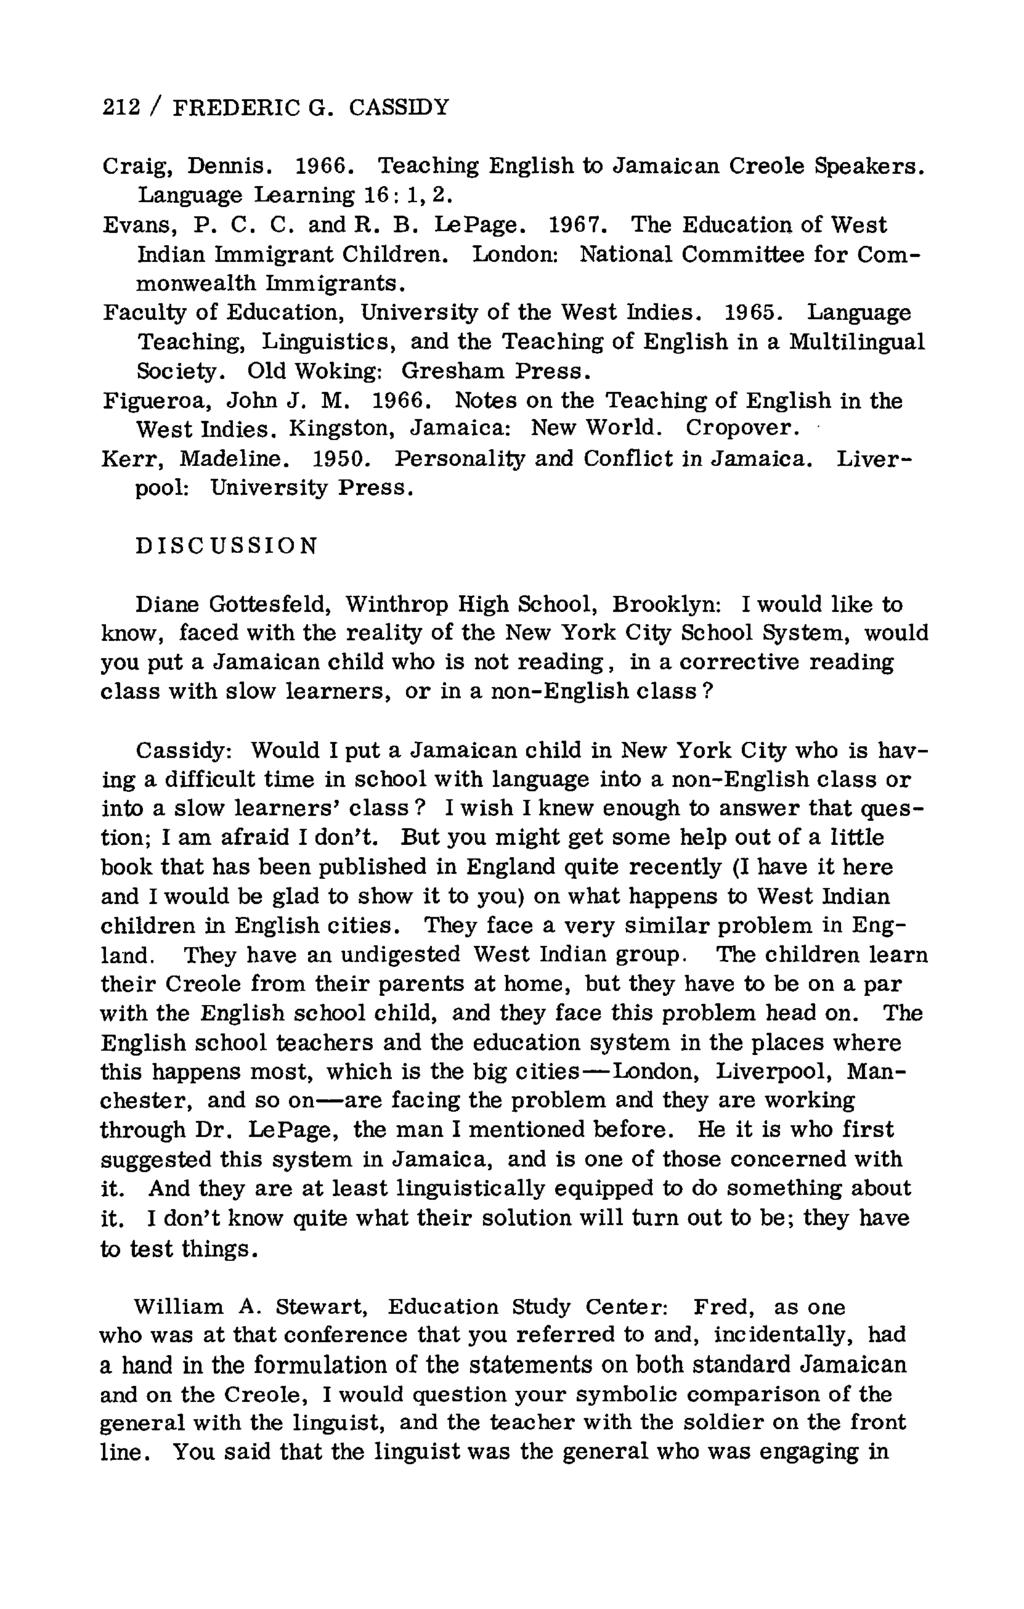 212 / FREDERIC G. CASSBDY Craig, Dennis. 1966. Teaching English to Jamaican Creole Speakers. Language Learning 16: 1,2. Evans, P. C. C. and R. B. LePage. 1967.